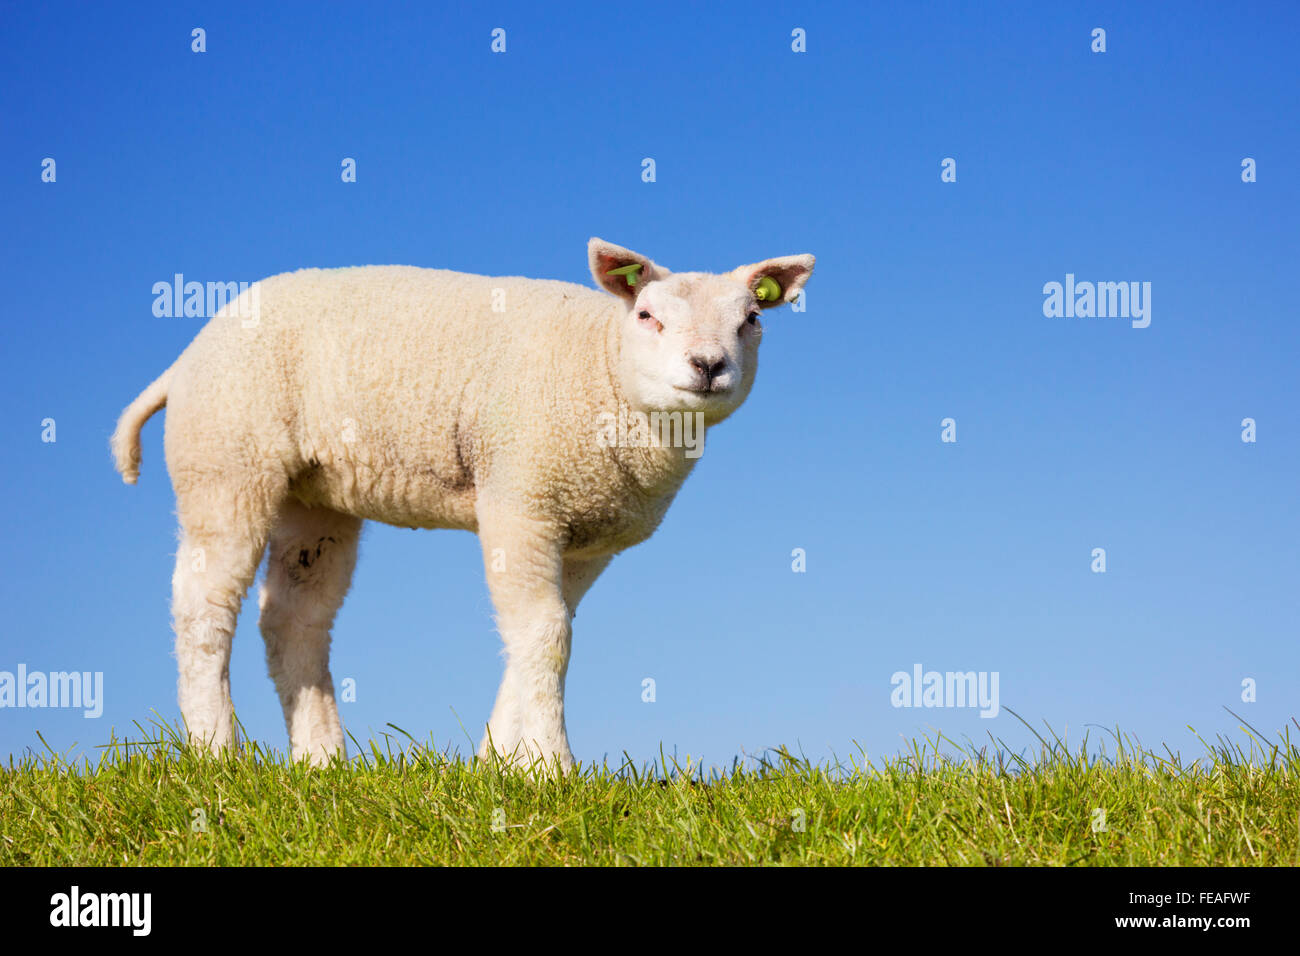 A cute little Texel lamb in the grass on the island of Texel in The Netherlands on a sunny day. - Stock Image